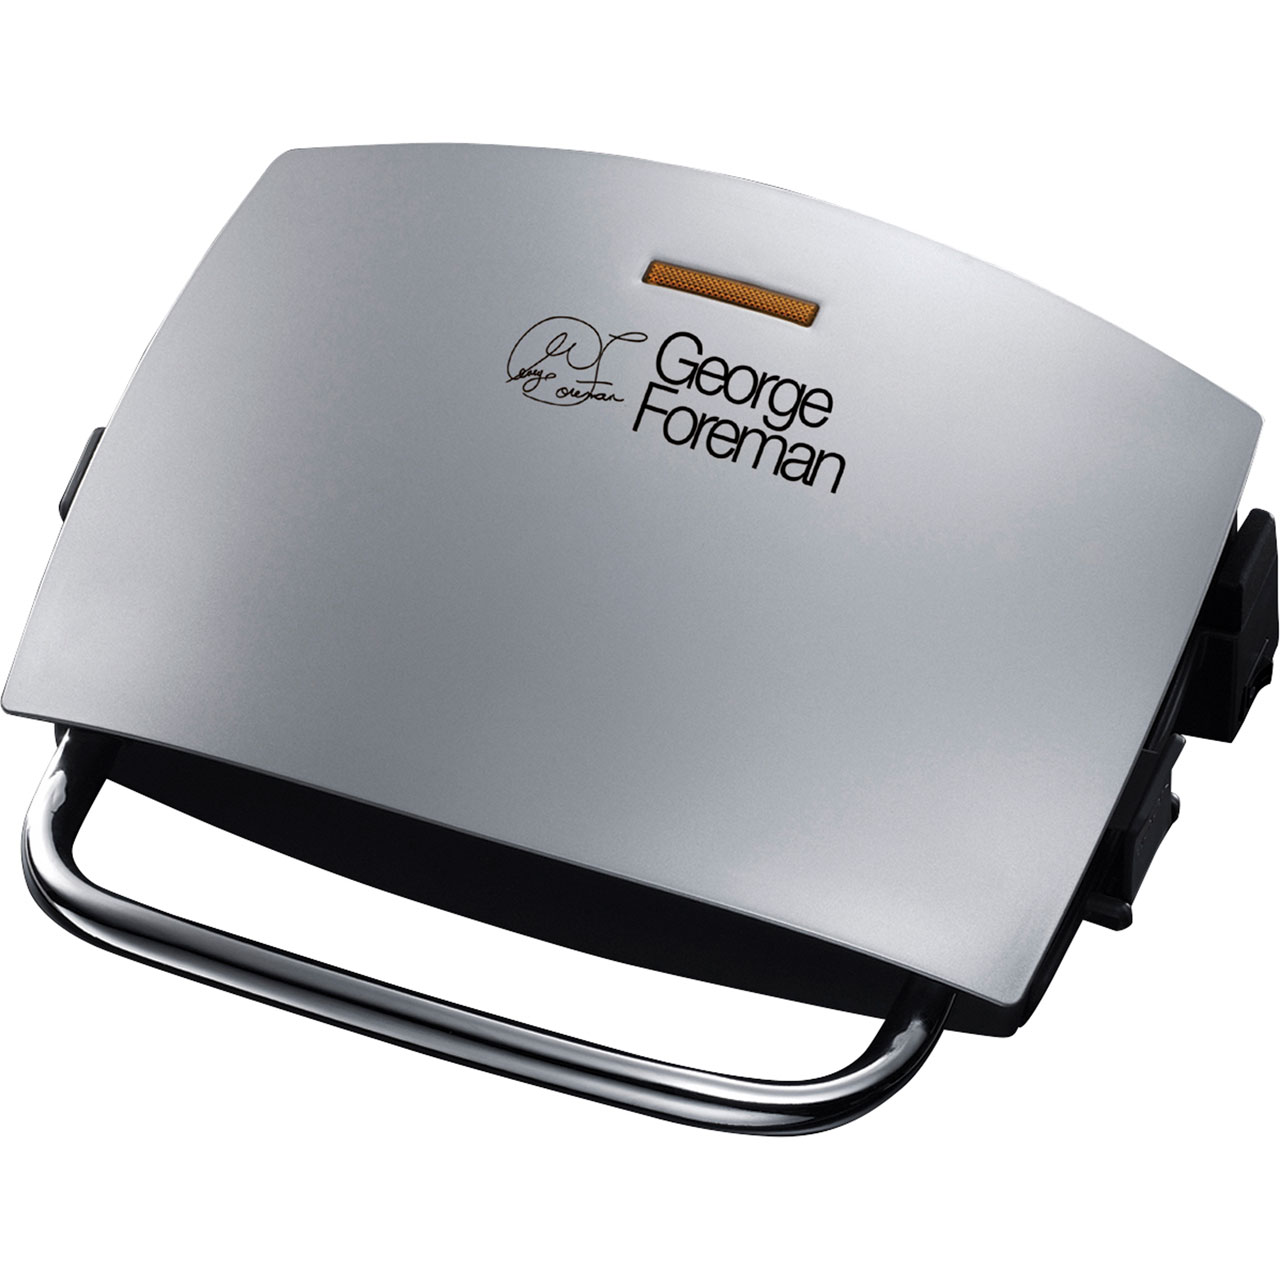 George Foreman Grill & Melt 14181 Health Grill - Silver